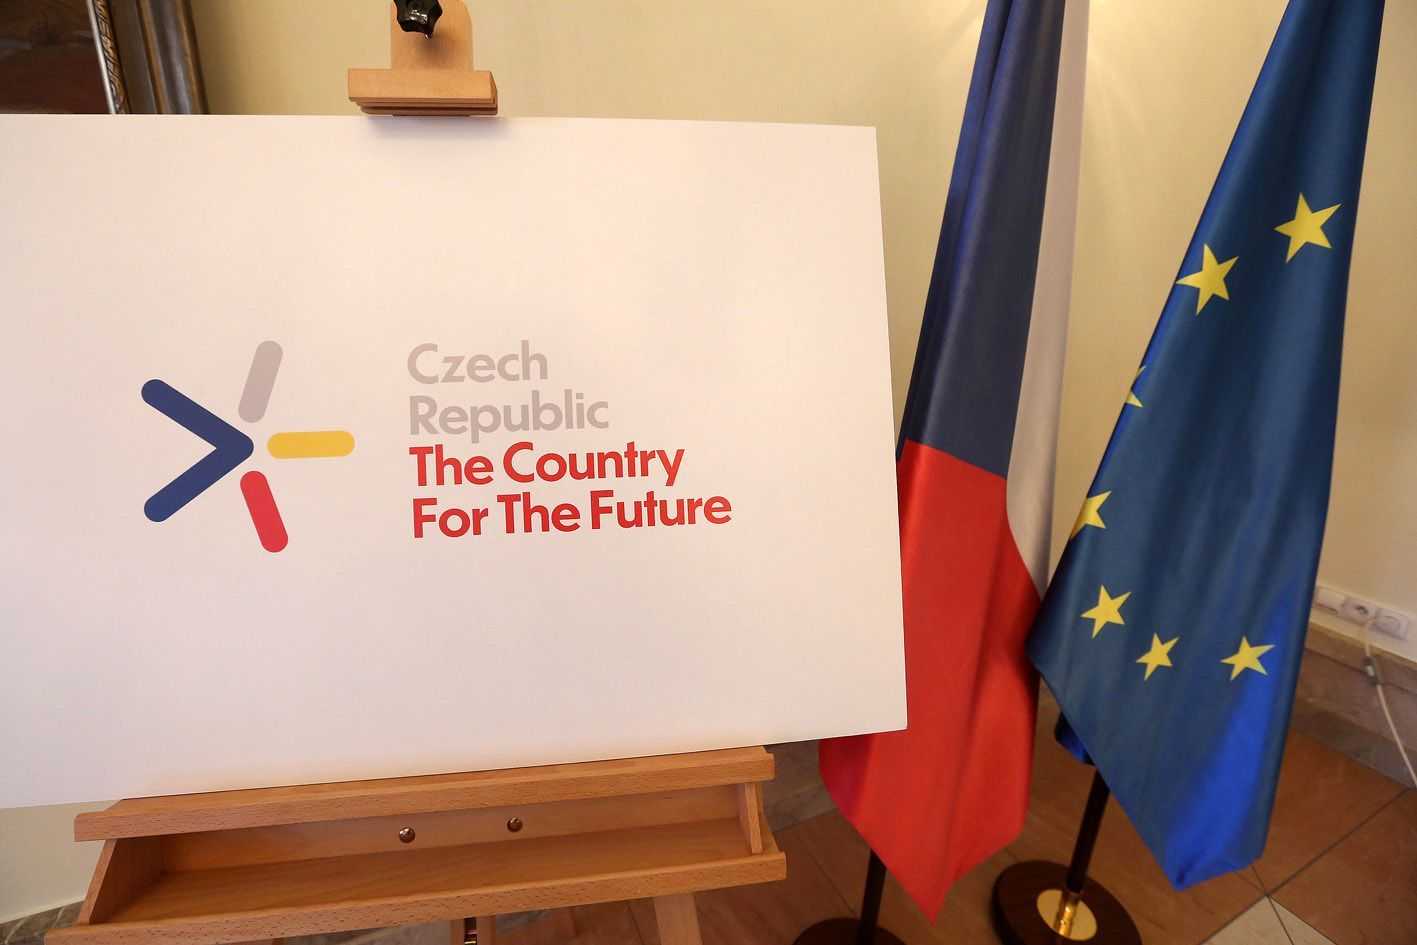 The Czech Republic: The Country For The Future